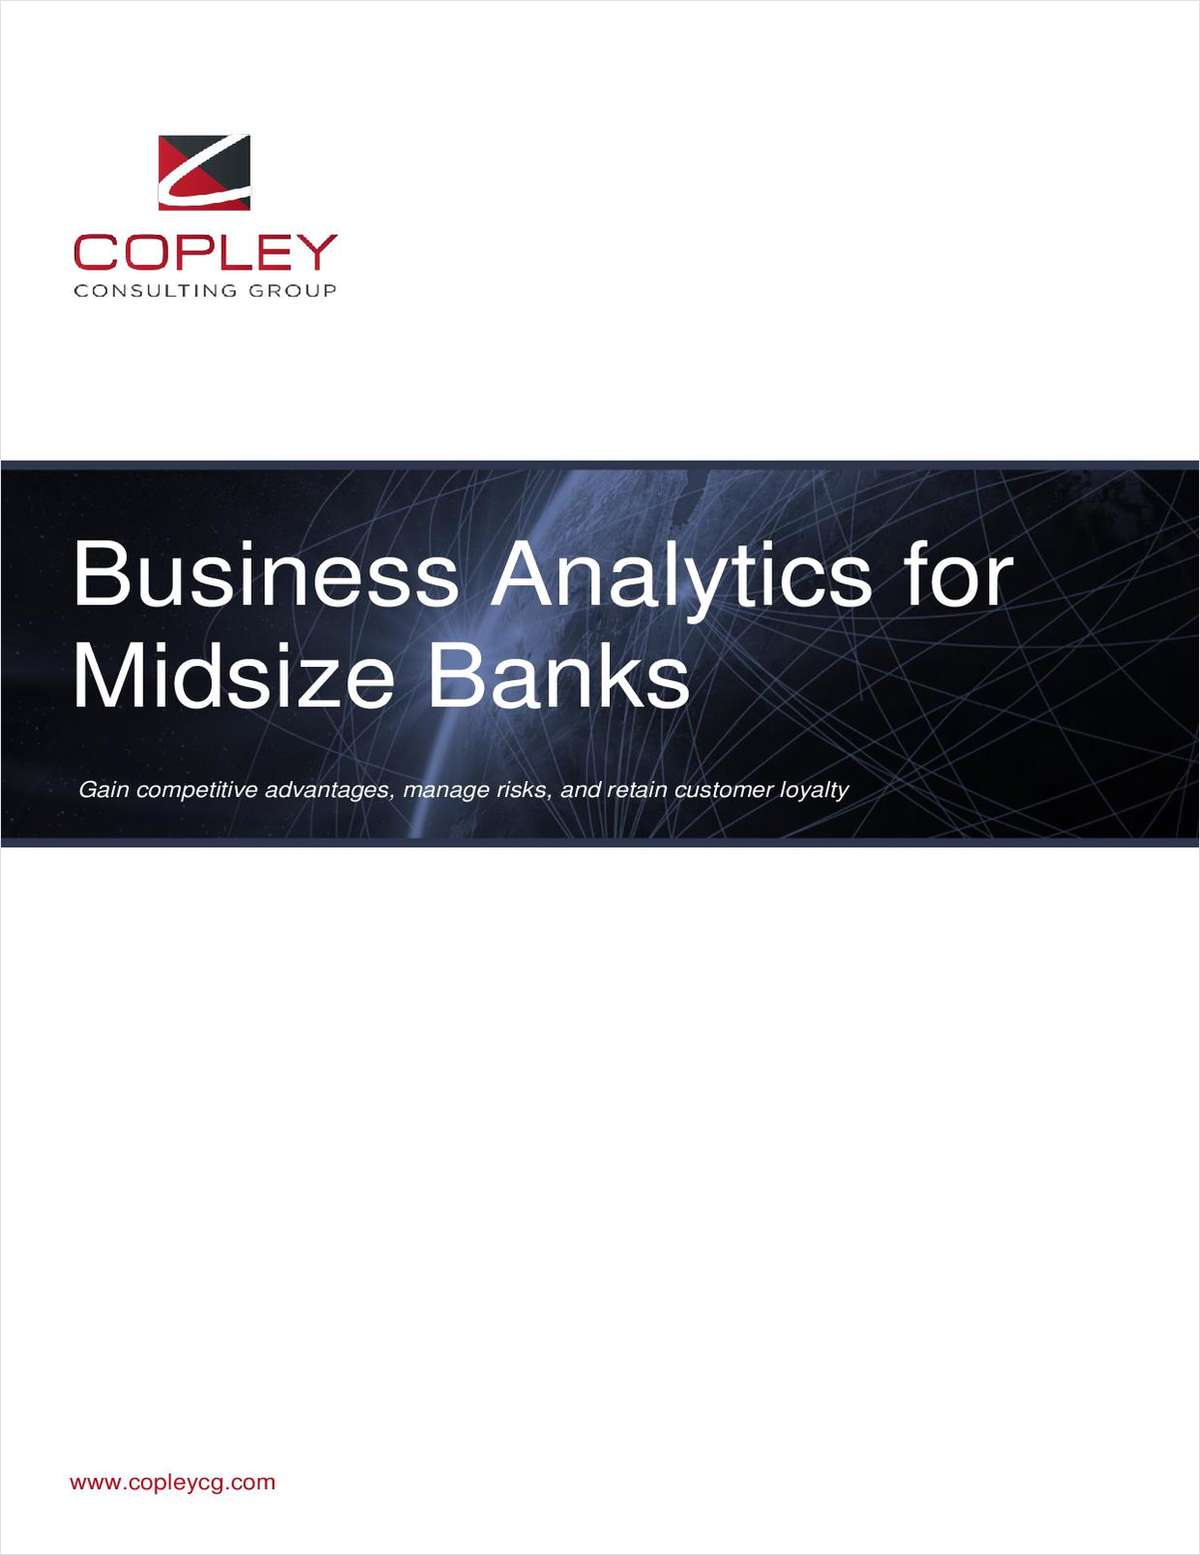 Business Analytics for Midsize Banks